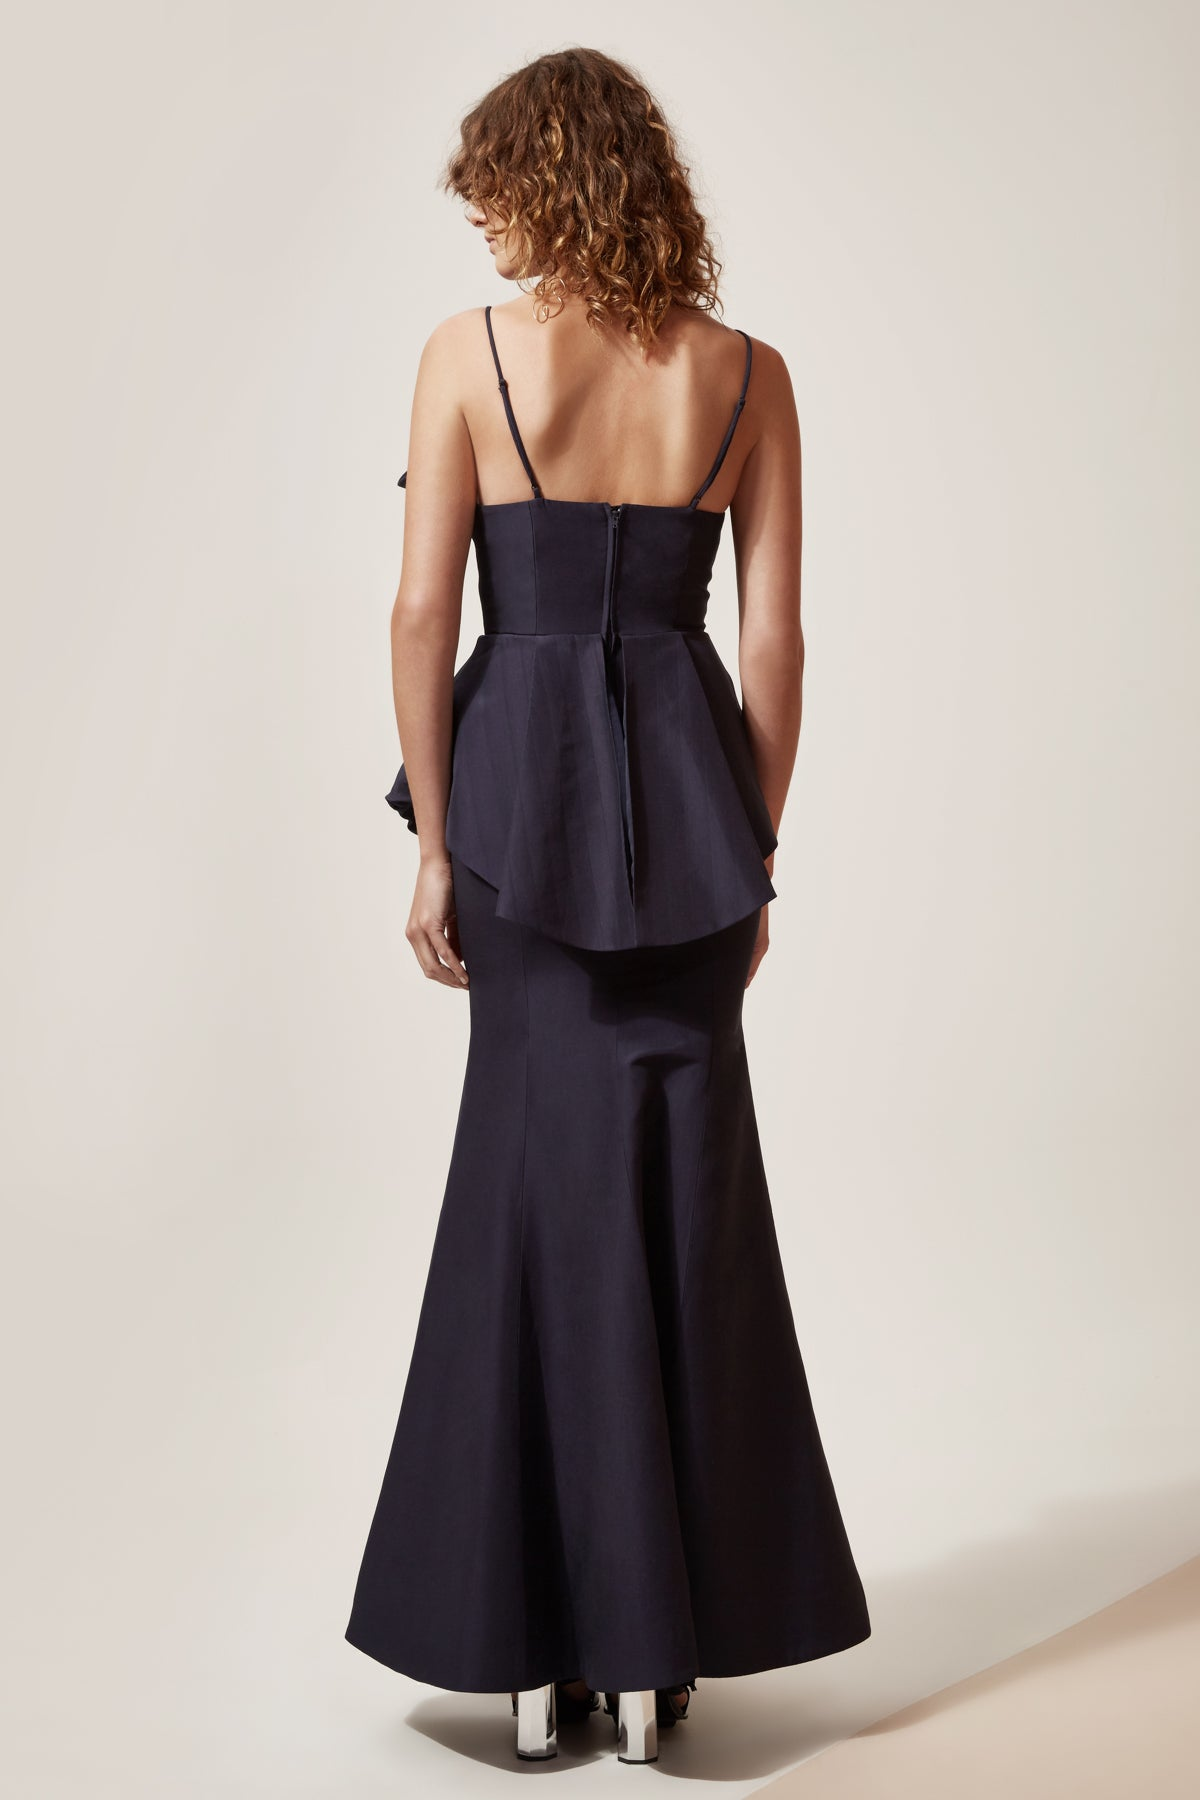 CONDUIT FULL LENGTH DRESS navy